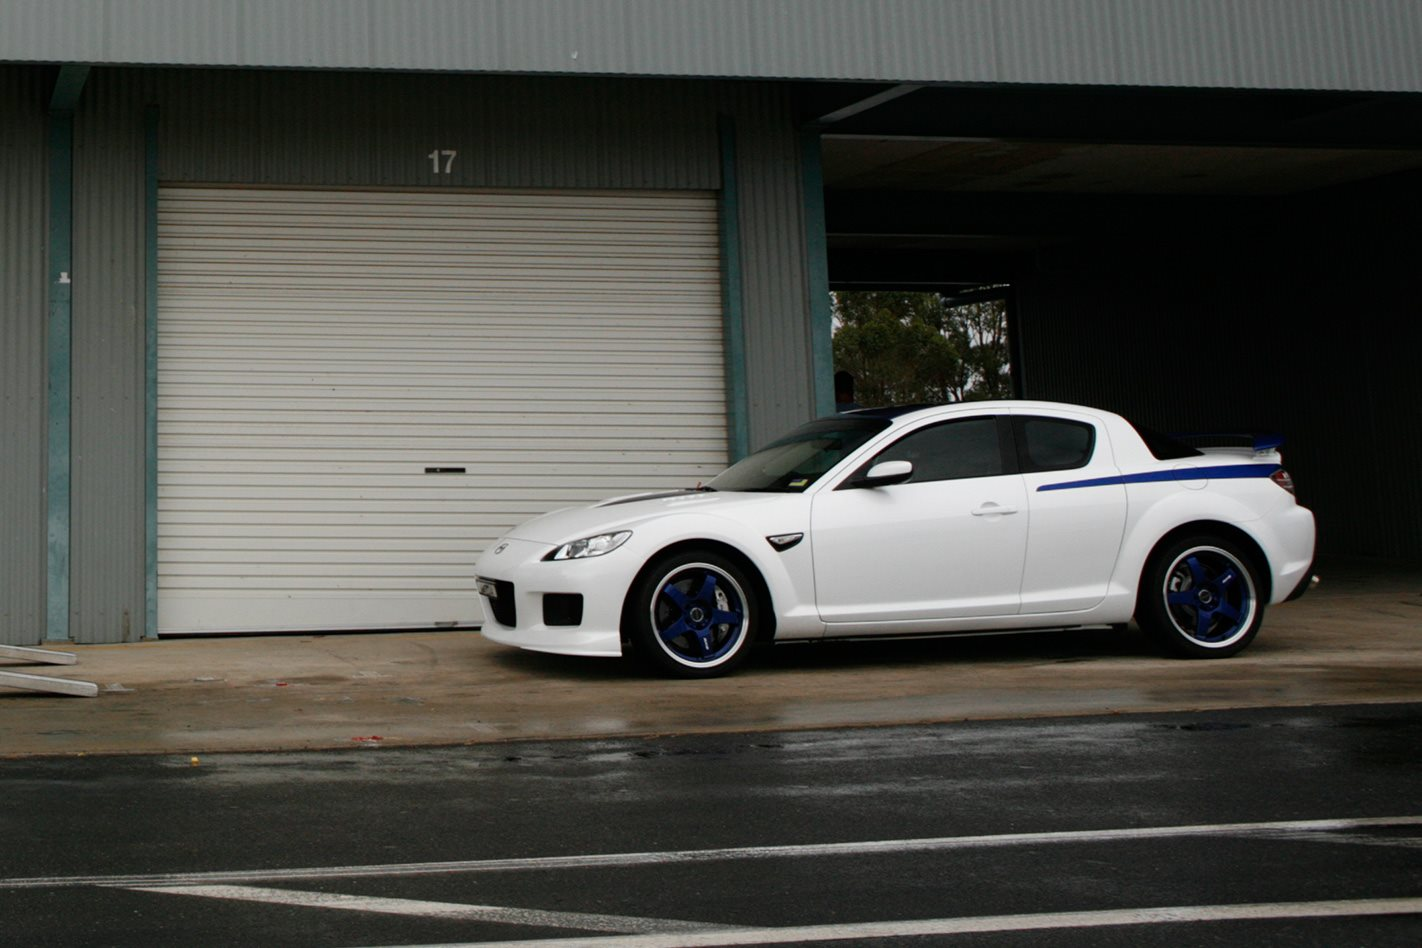 Mazda RX-8 SP side profile